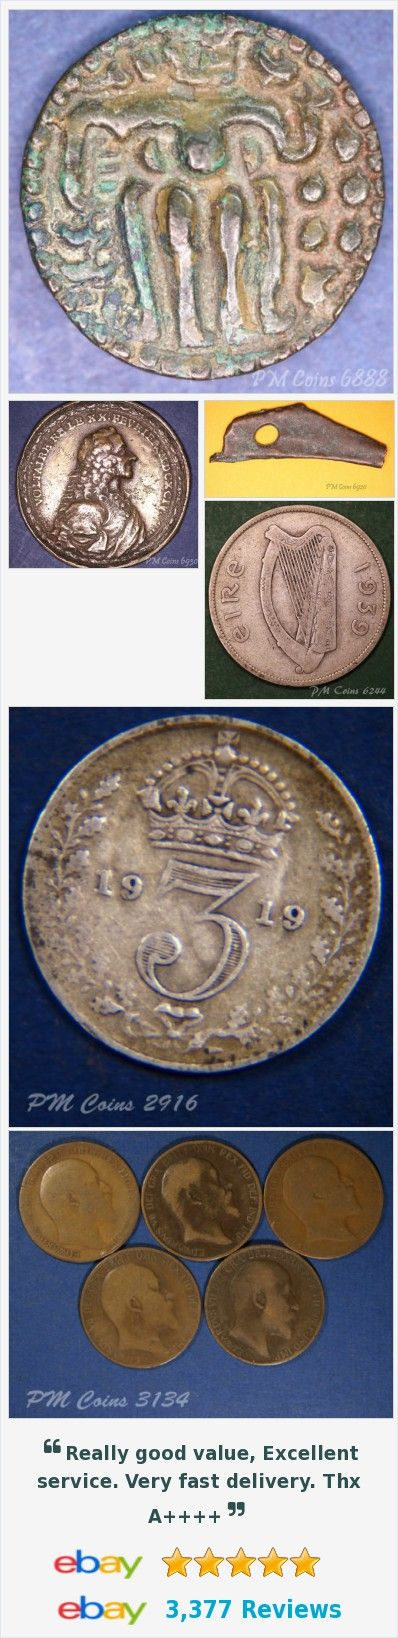 Ireland - Coins and Banknotes, Irish Coins - decimal items in PM Coin Shop store on eBay! http://stores.ebay.co.uk/PM-Coin-Shop/_i.html?rt=nc&_sid=1083015530&_trksid=p4634.c0.m14.l1513&_pgn=2